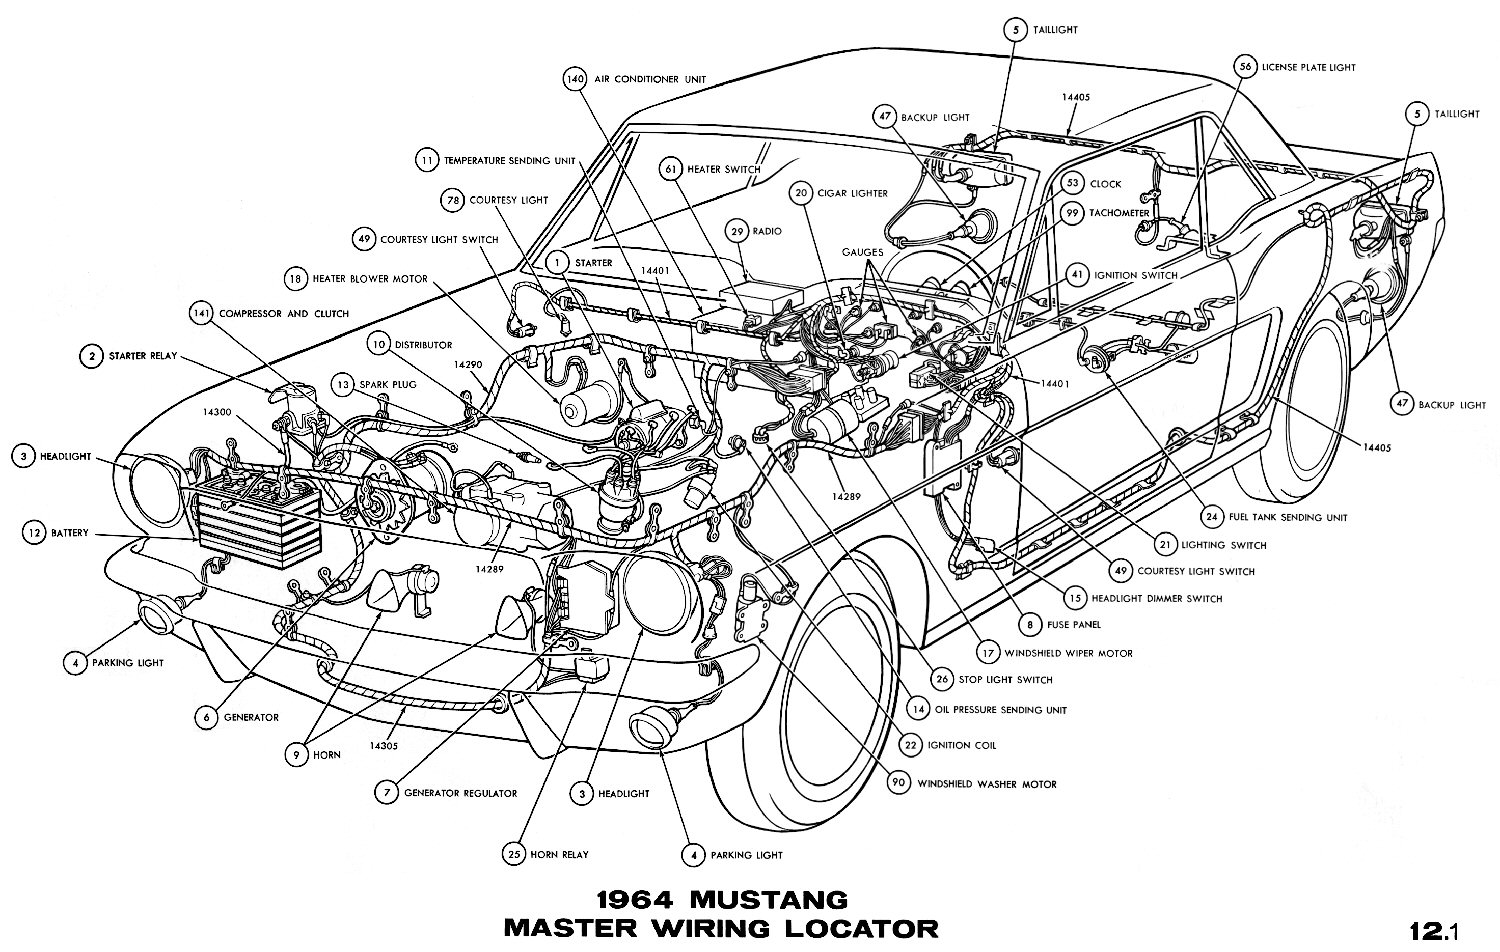 wiring diagram best ford mustang free cruise control wiring diagram 2003 ford mustang 1967 mustang engine diagram. 1967. free printable wiring ...